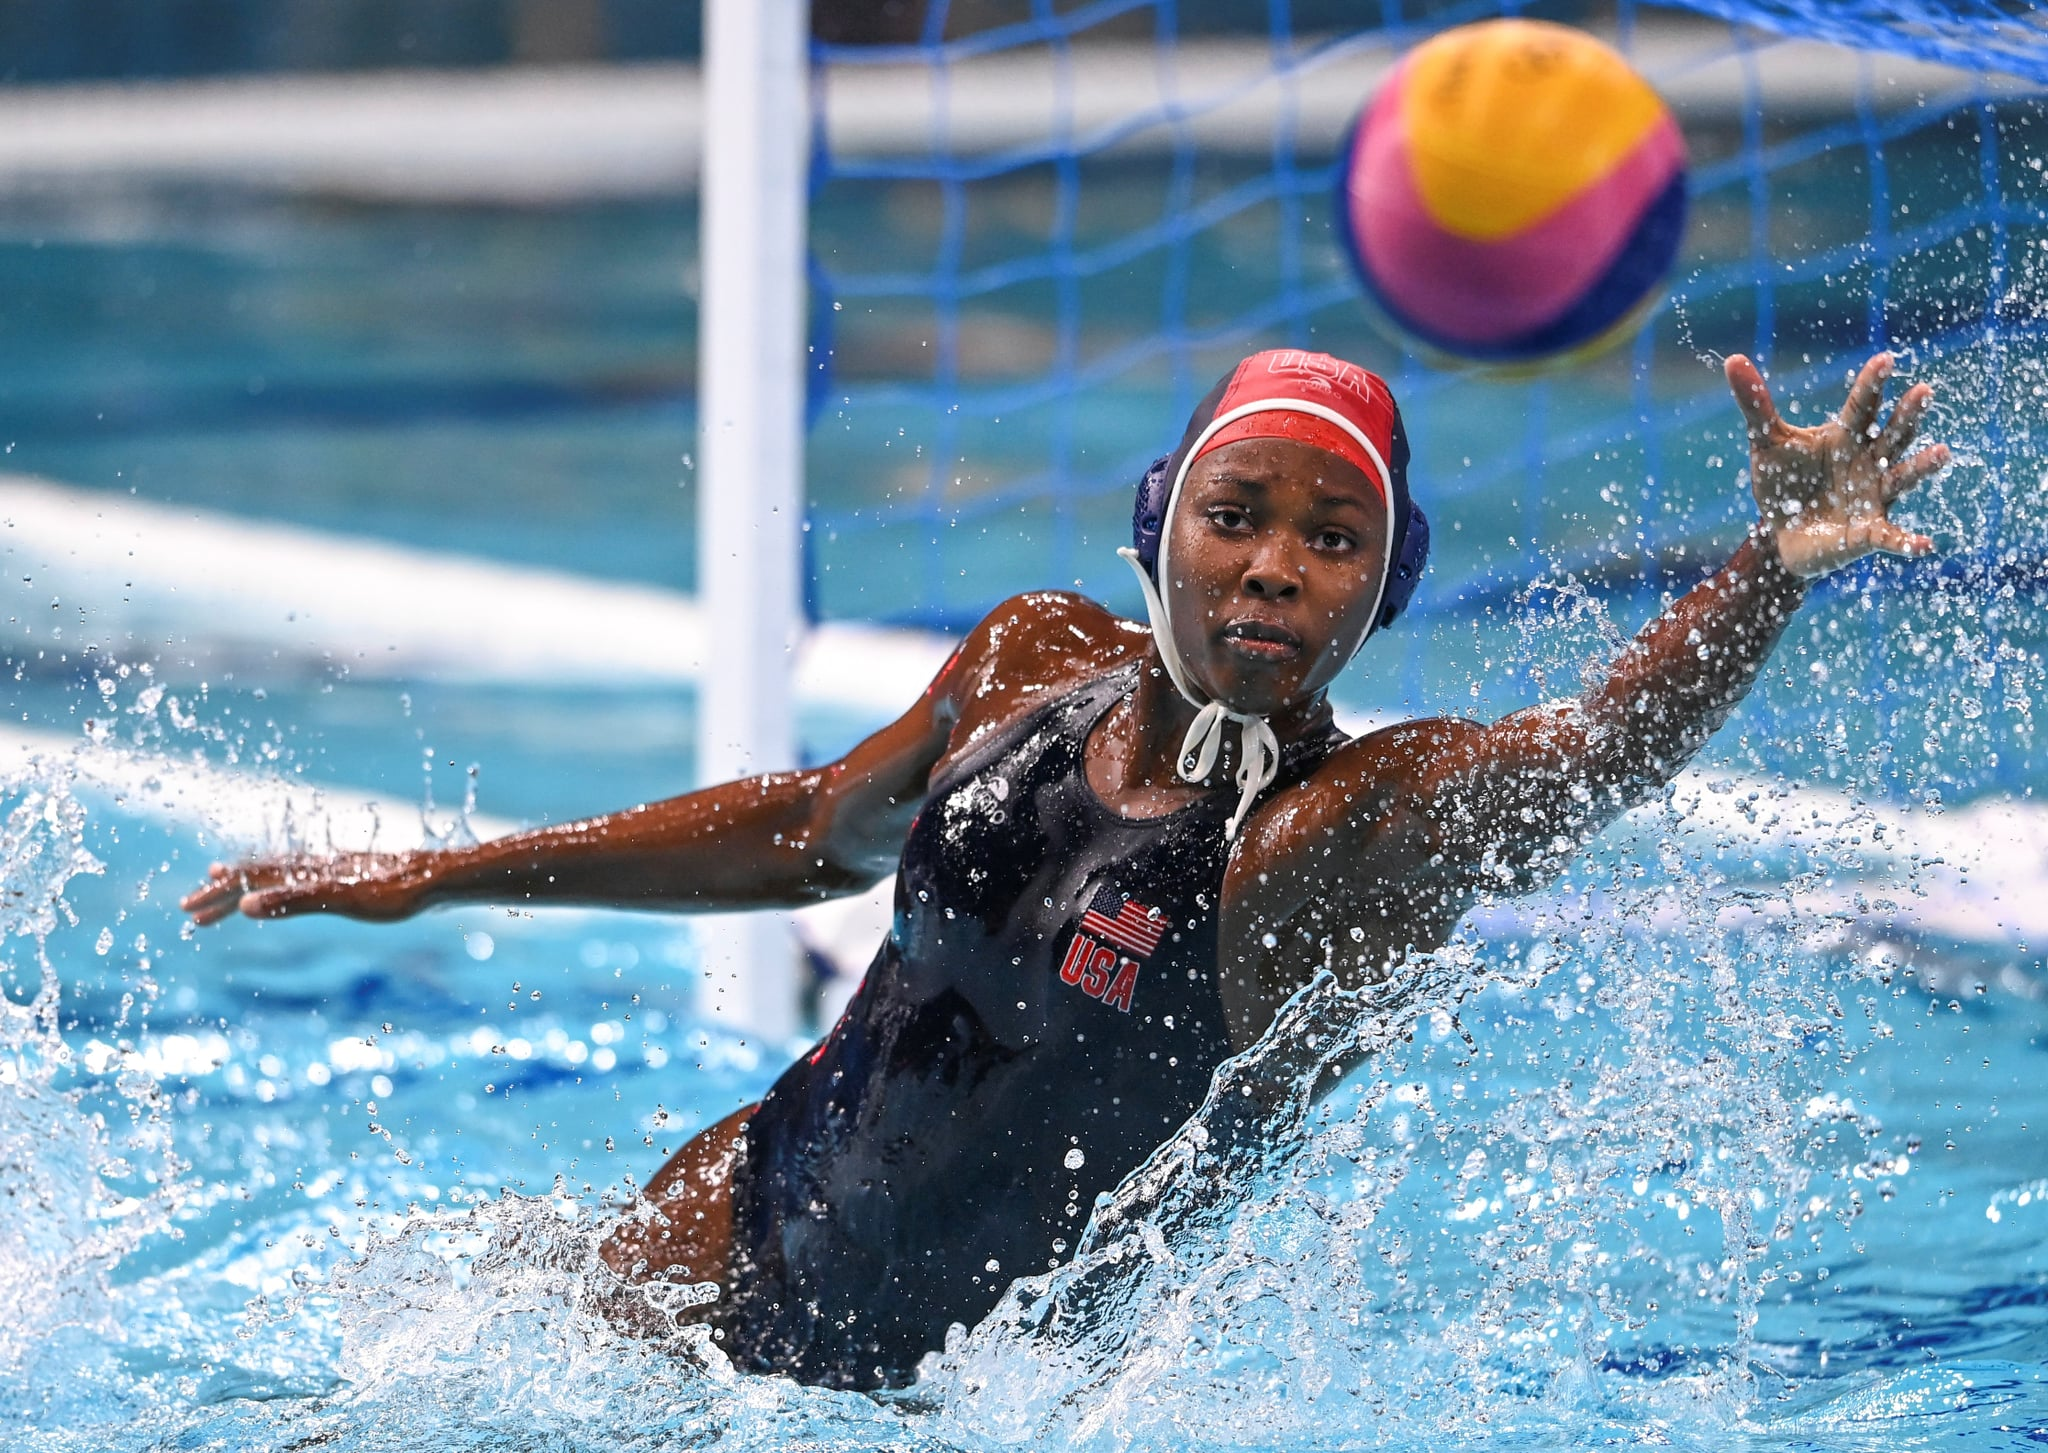 Ashleigh Johnson of the United States competes during the water polo women's gold medal match between Spain and the United States at the Tokyo 2020 Olympic Games in Tokyo, Japan, Aug. 7, 2021. (Photo by Xia Yifang/Xinhua via Getty Images)